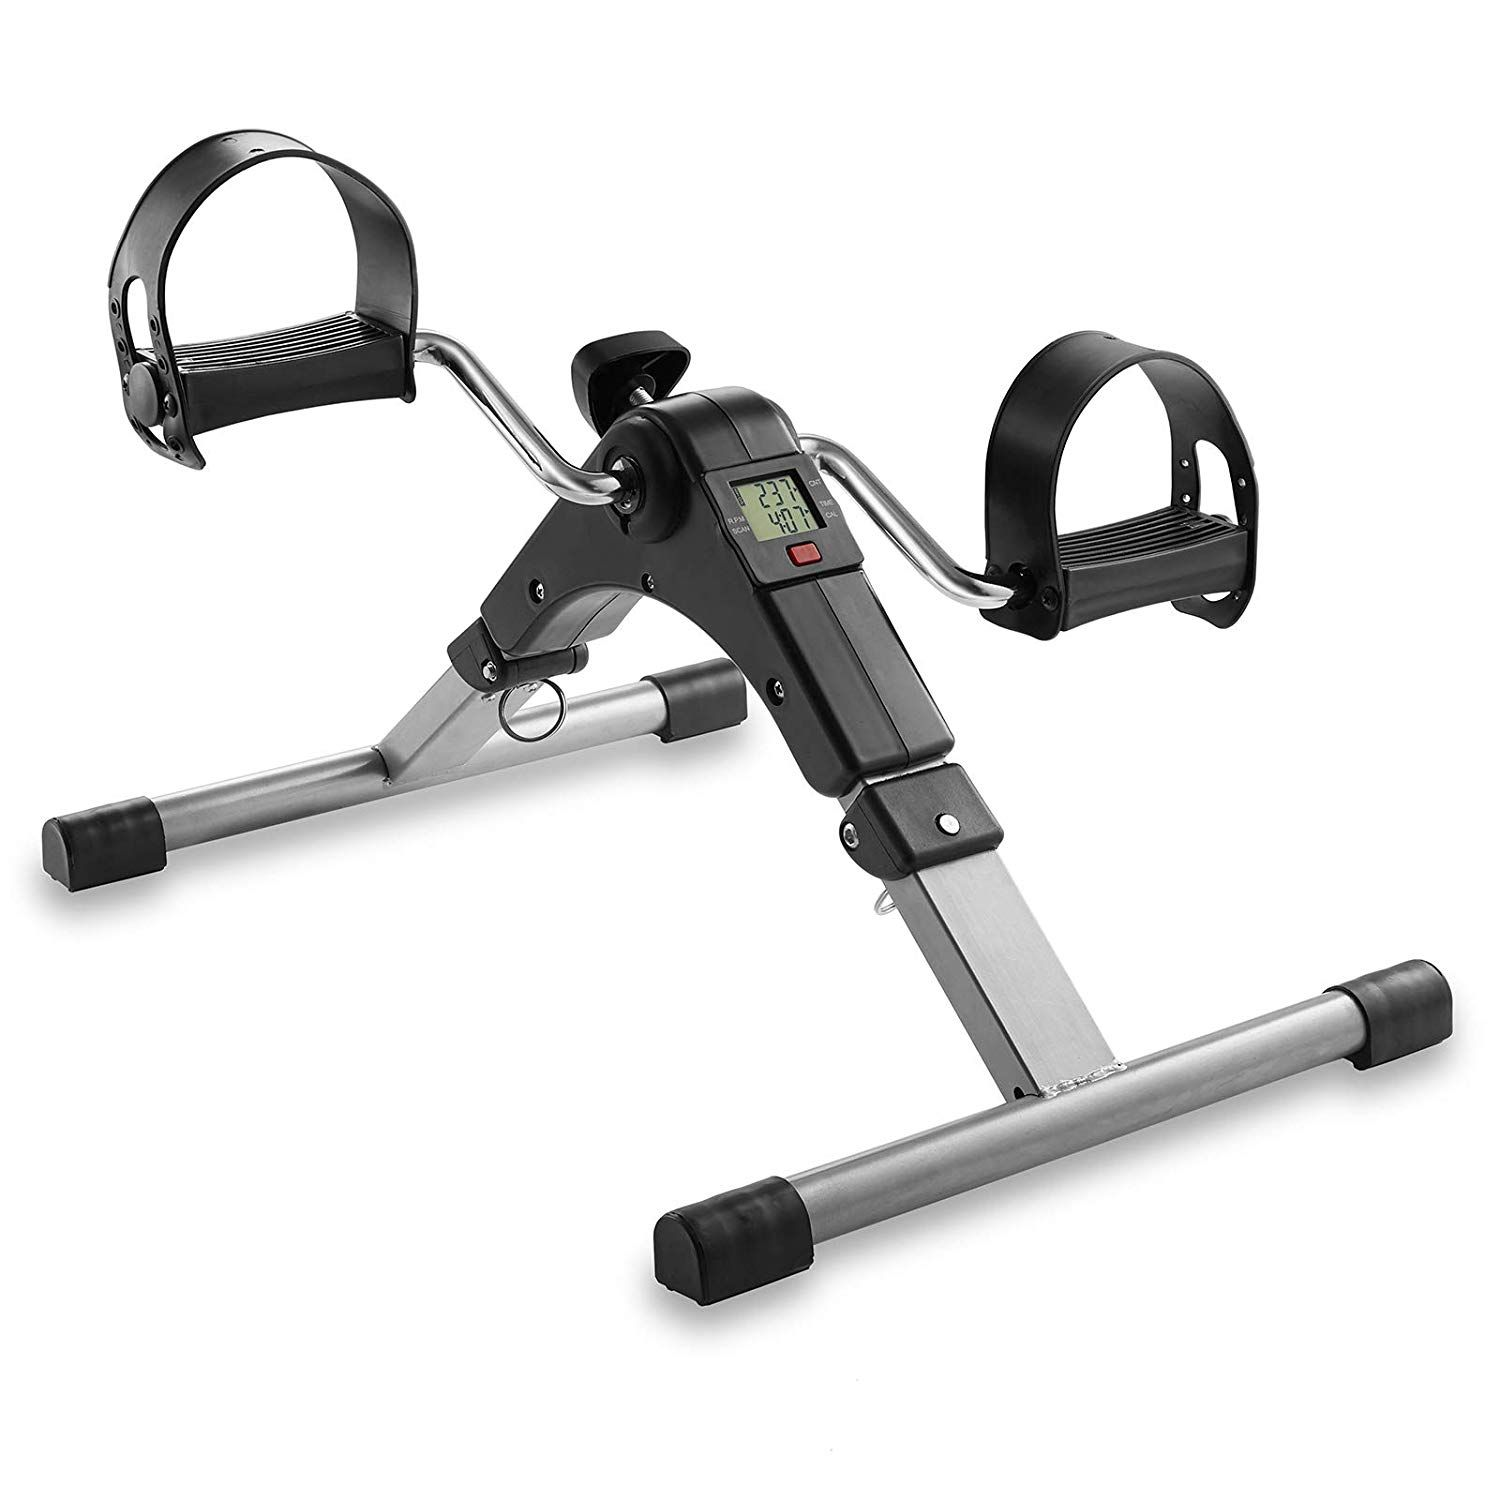 Node Fitness Foldable Under Desk Exercise Bike Pedal Exerciser Read More At The Image Link This Is An Affiliate Link Exercisebik Desk Workout Bike Pedals Bike